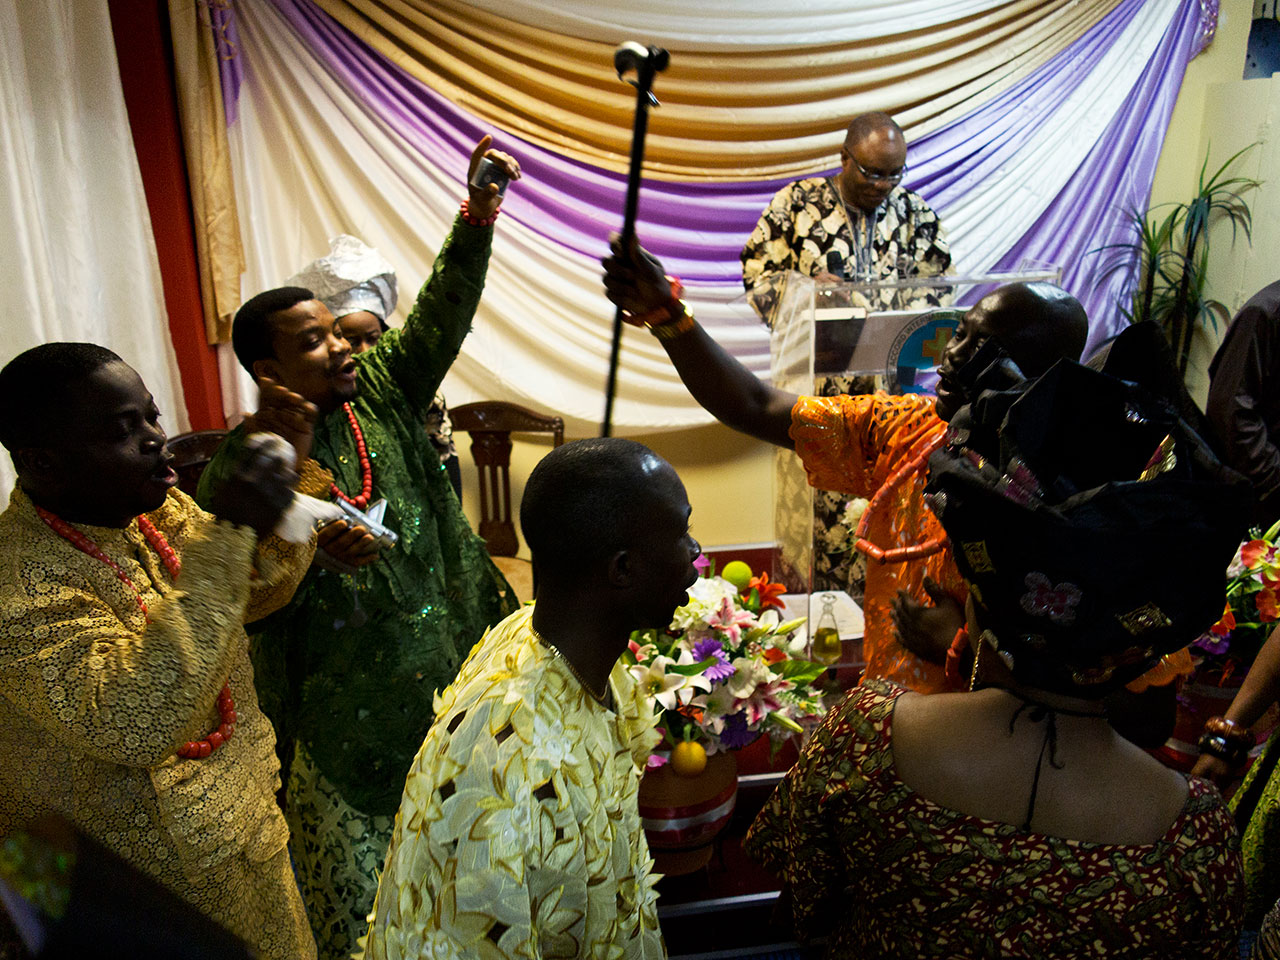 One Accord International Gospel Ministries (Nigerian Evangelical), Kypseli © Tassos Vrettos.